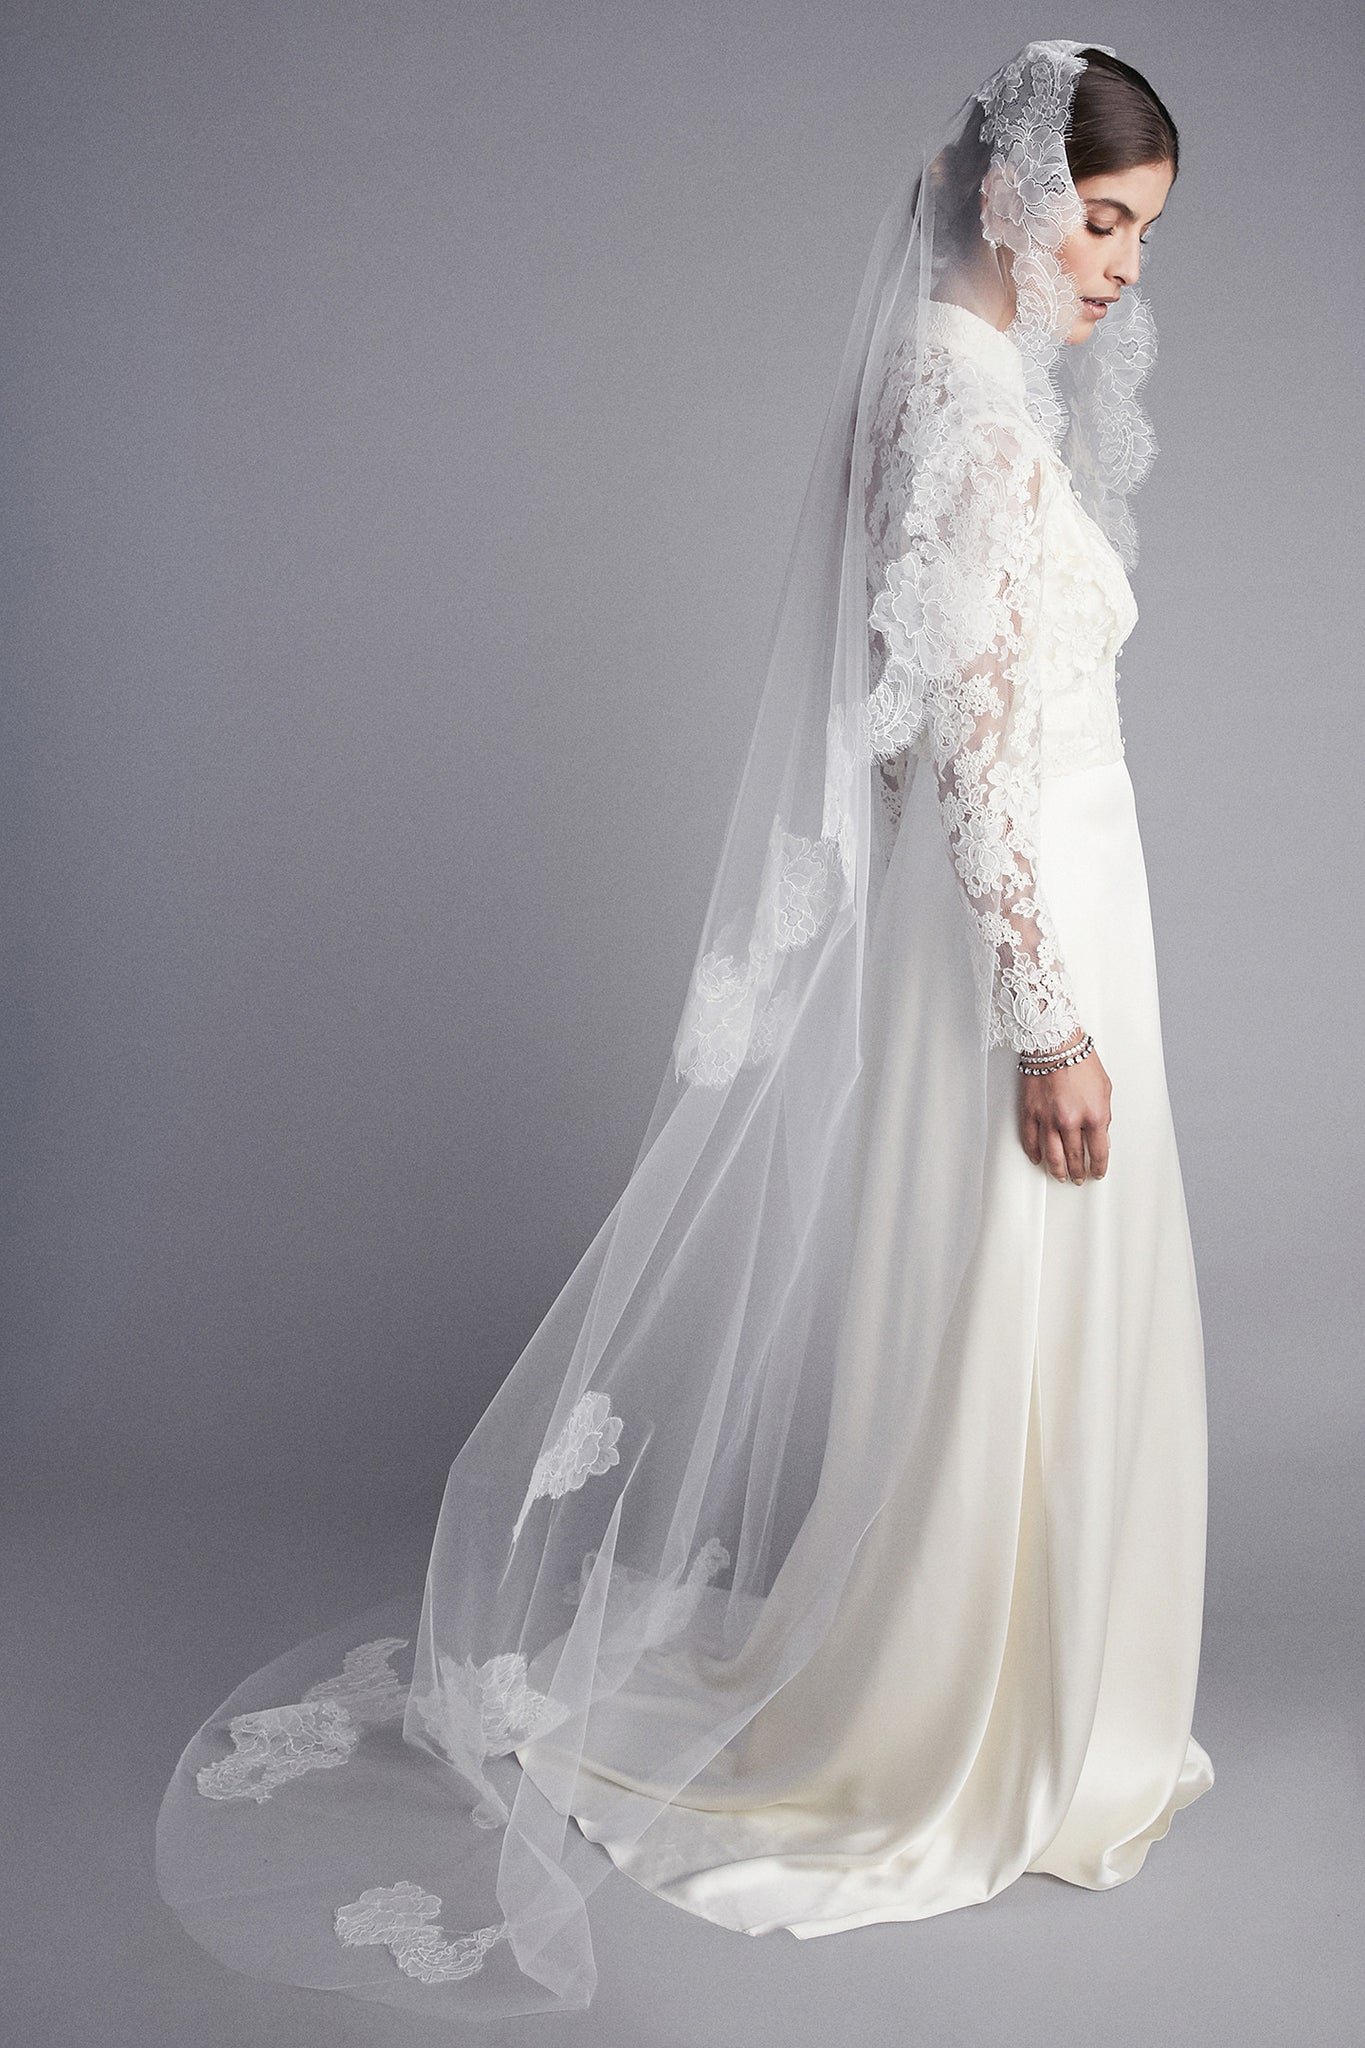 Lauren Mantilla Lace Veil